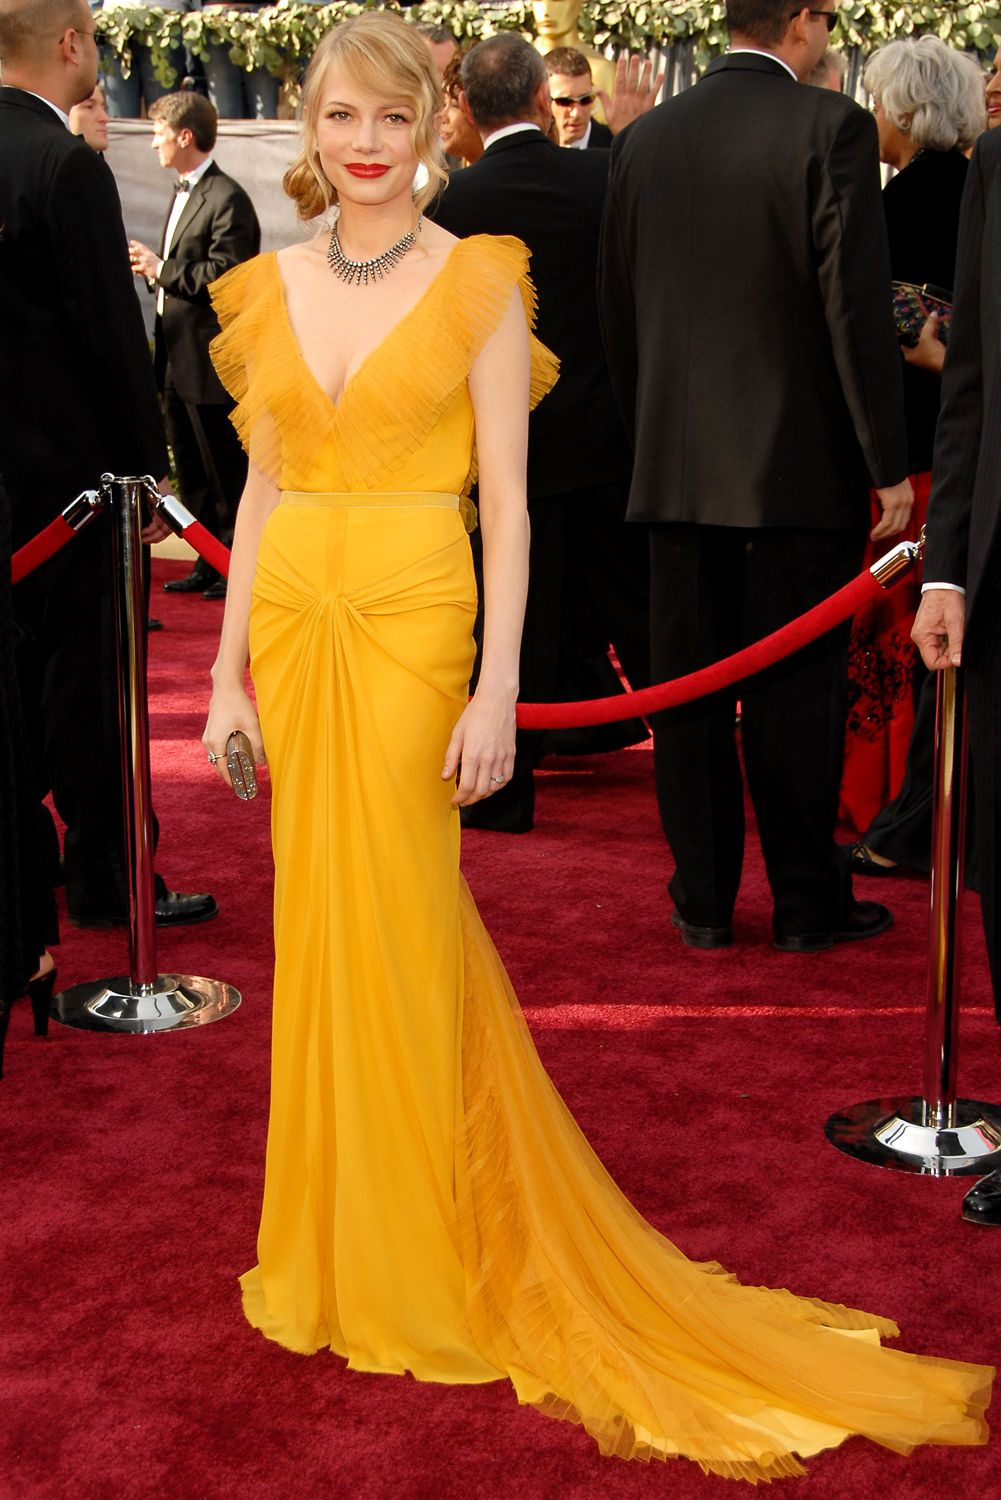 Michelle Williams in Vera Wang at the 2006 Oscars